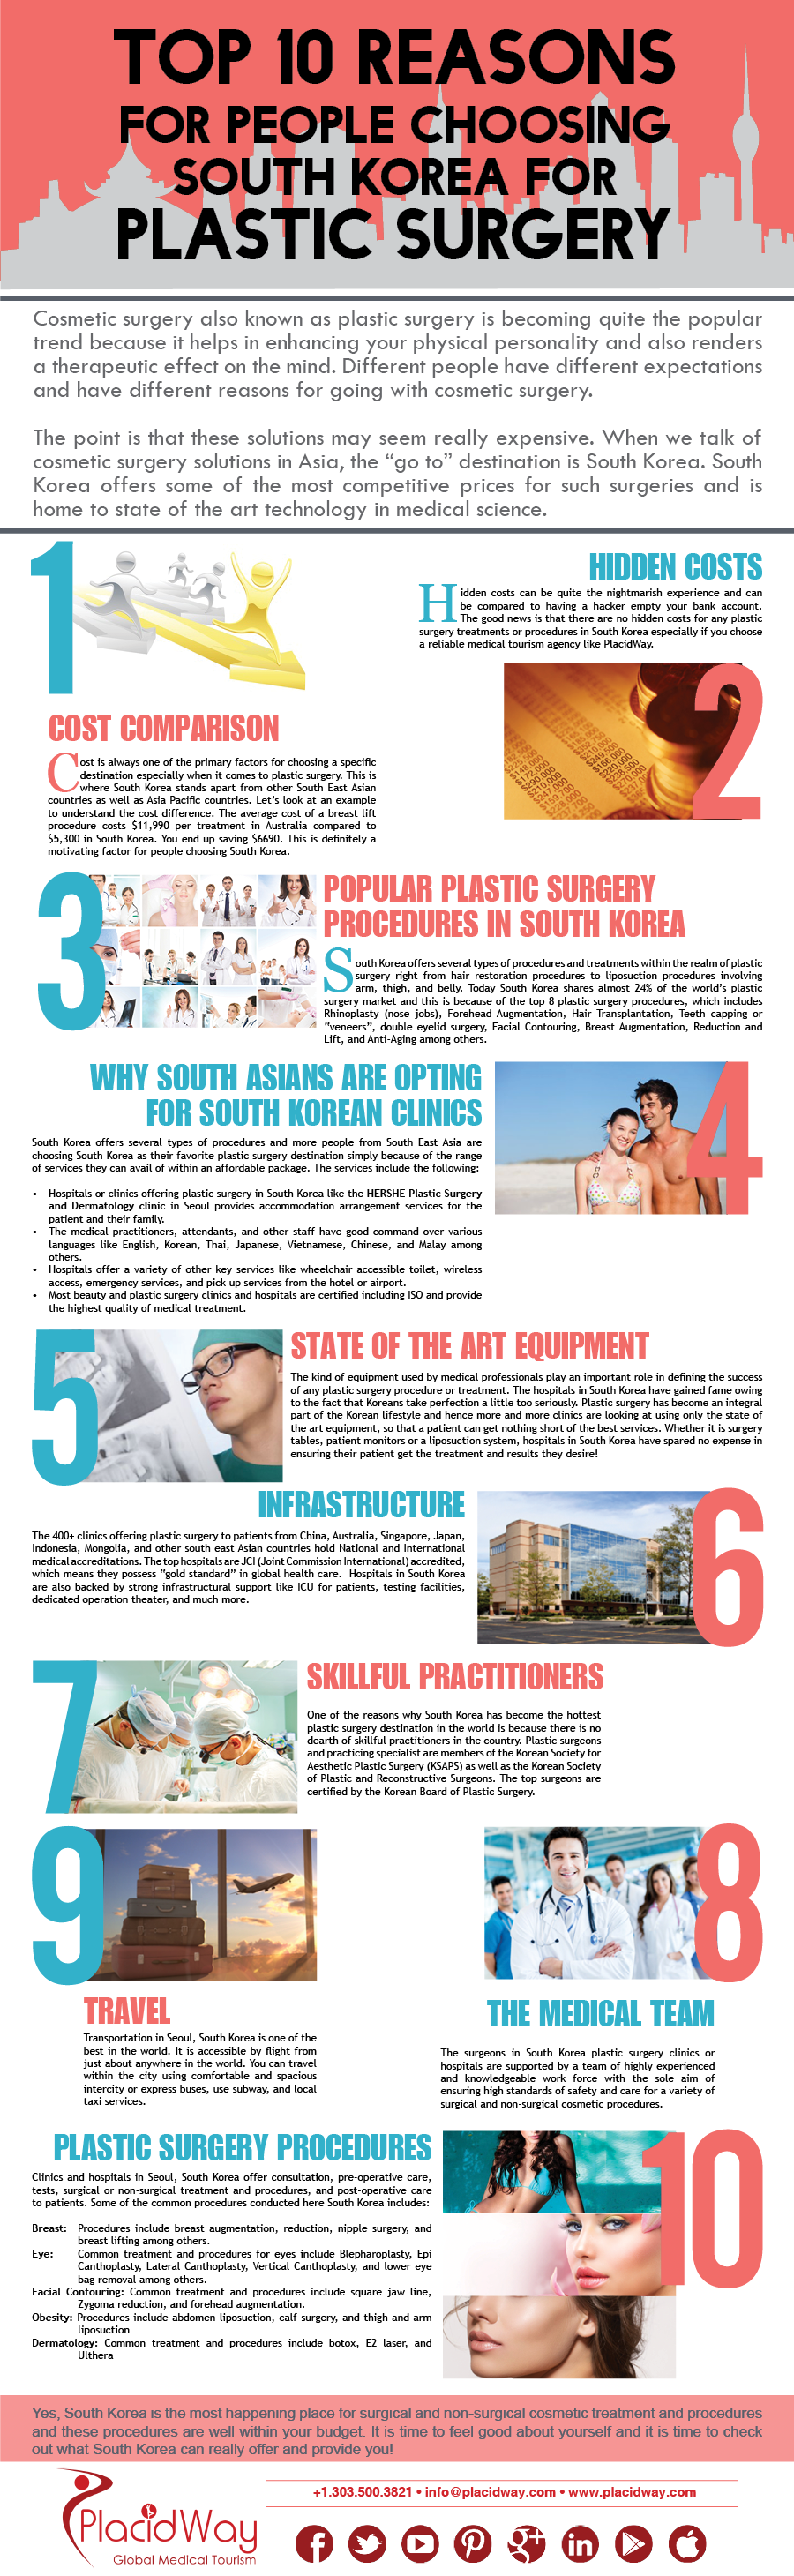 Infographics: Top 10 Reasons for People Choosing South Korea for Plastic Surgery